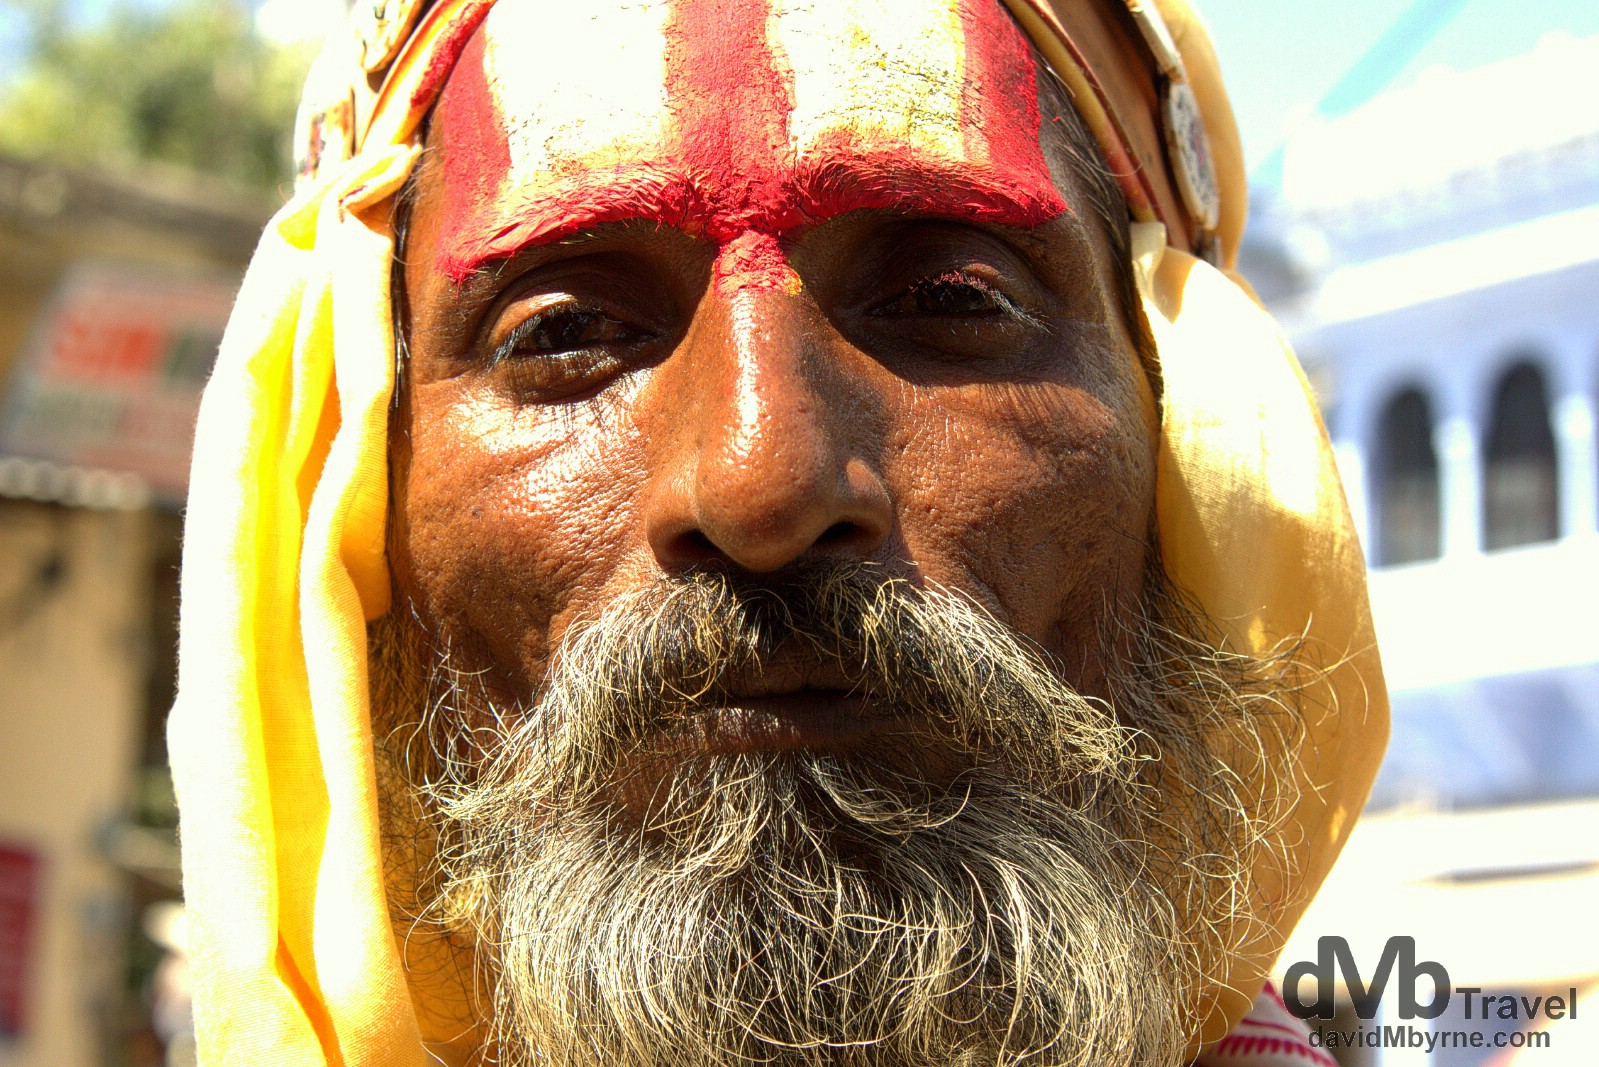 A Sadu, a Hindu holy man, on the streets of Pushkar, Rajasthan, India. October 3rd 2012.